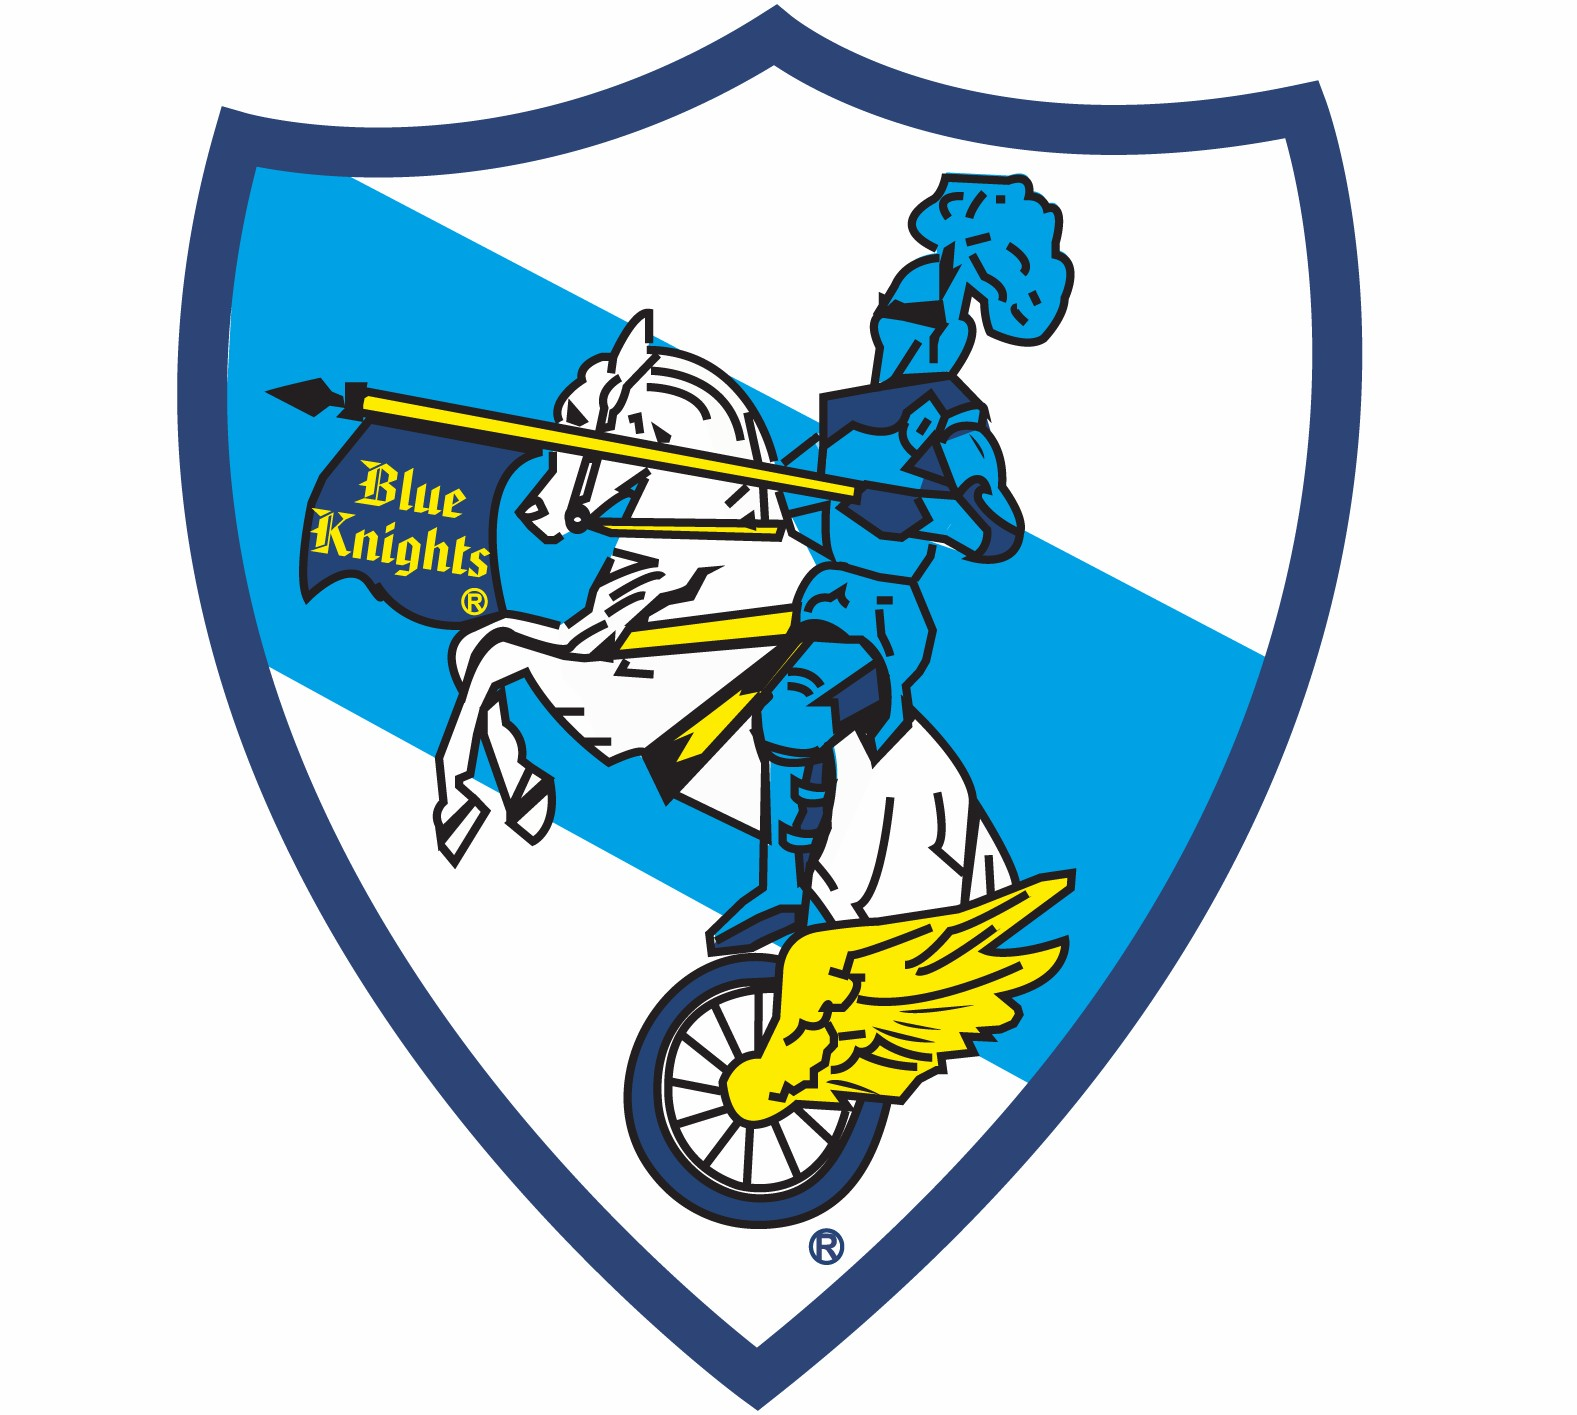 Blue Knights International Law Enforcement Motorcycle Club